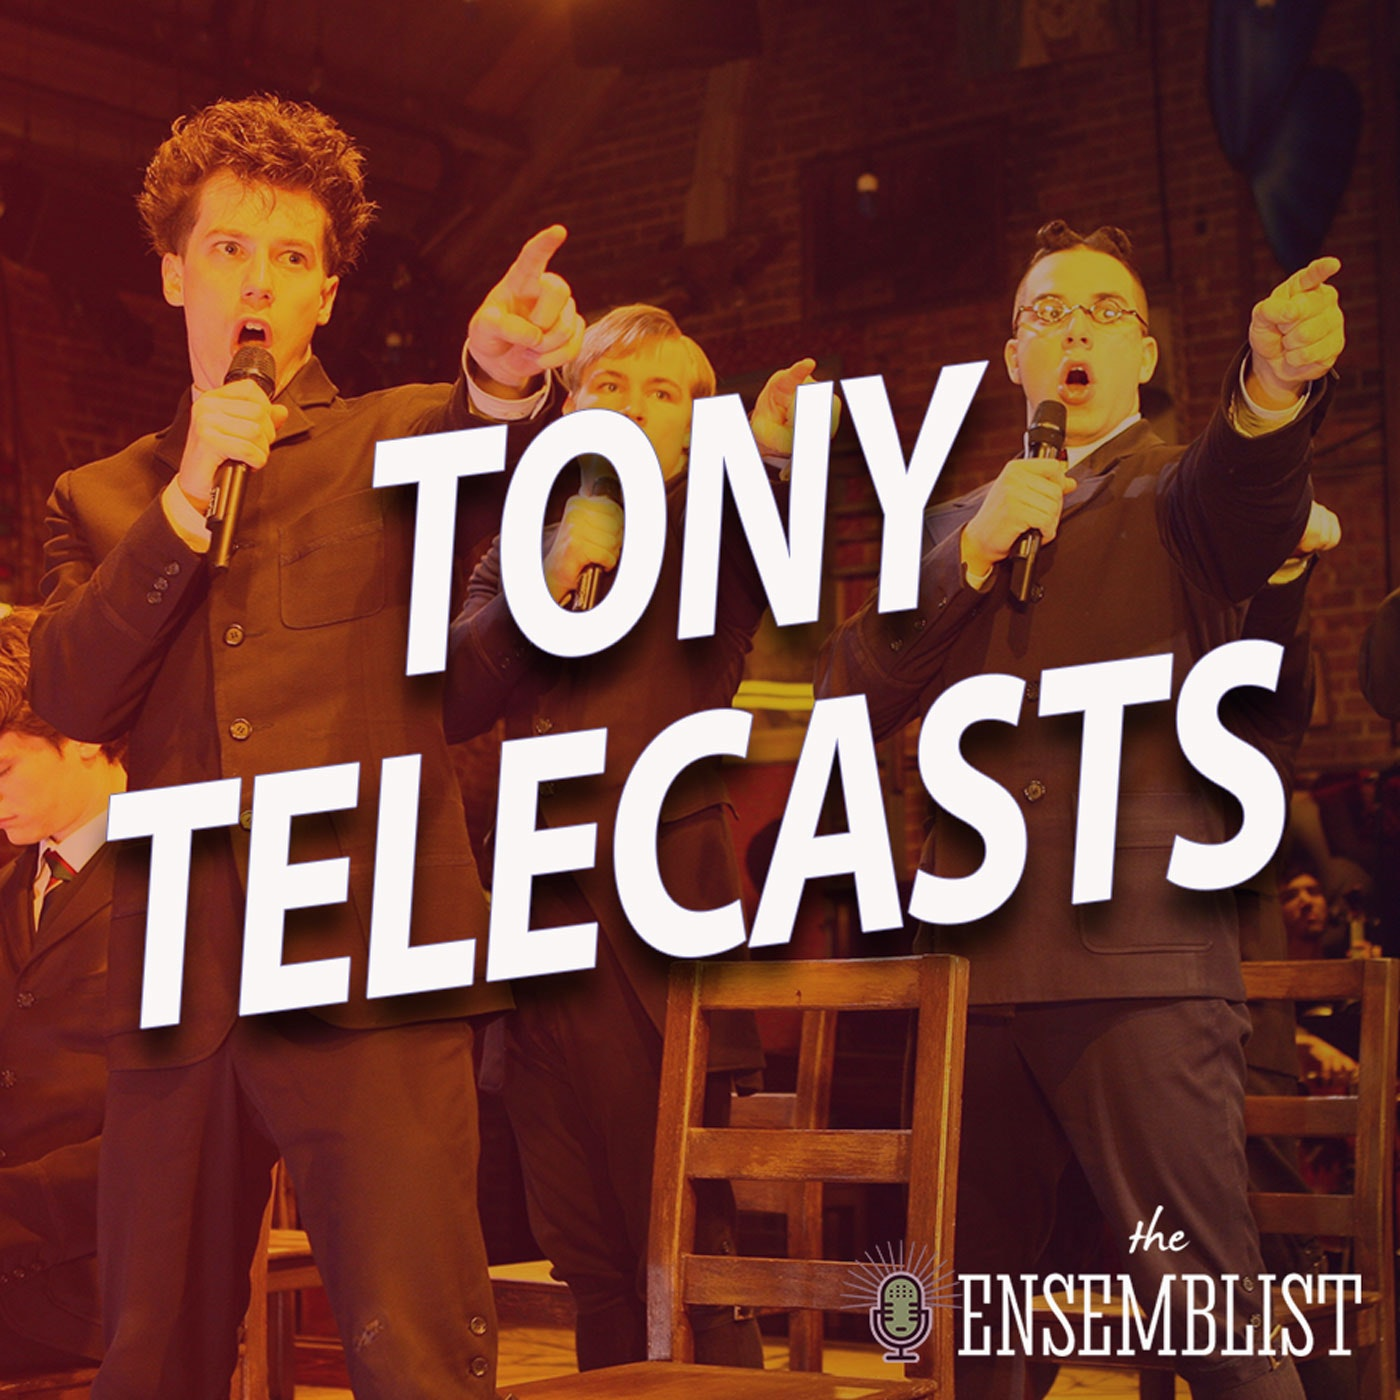 #490 - Tony Telecasts (2007 - Spring Awakening, Curtains, Grey Gardens, Mary Poppins) Part 2